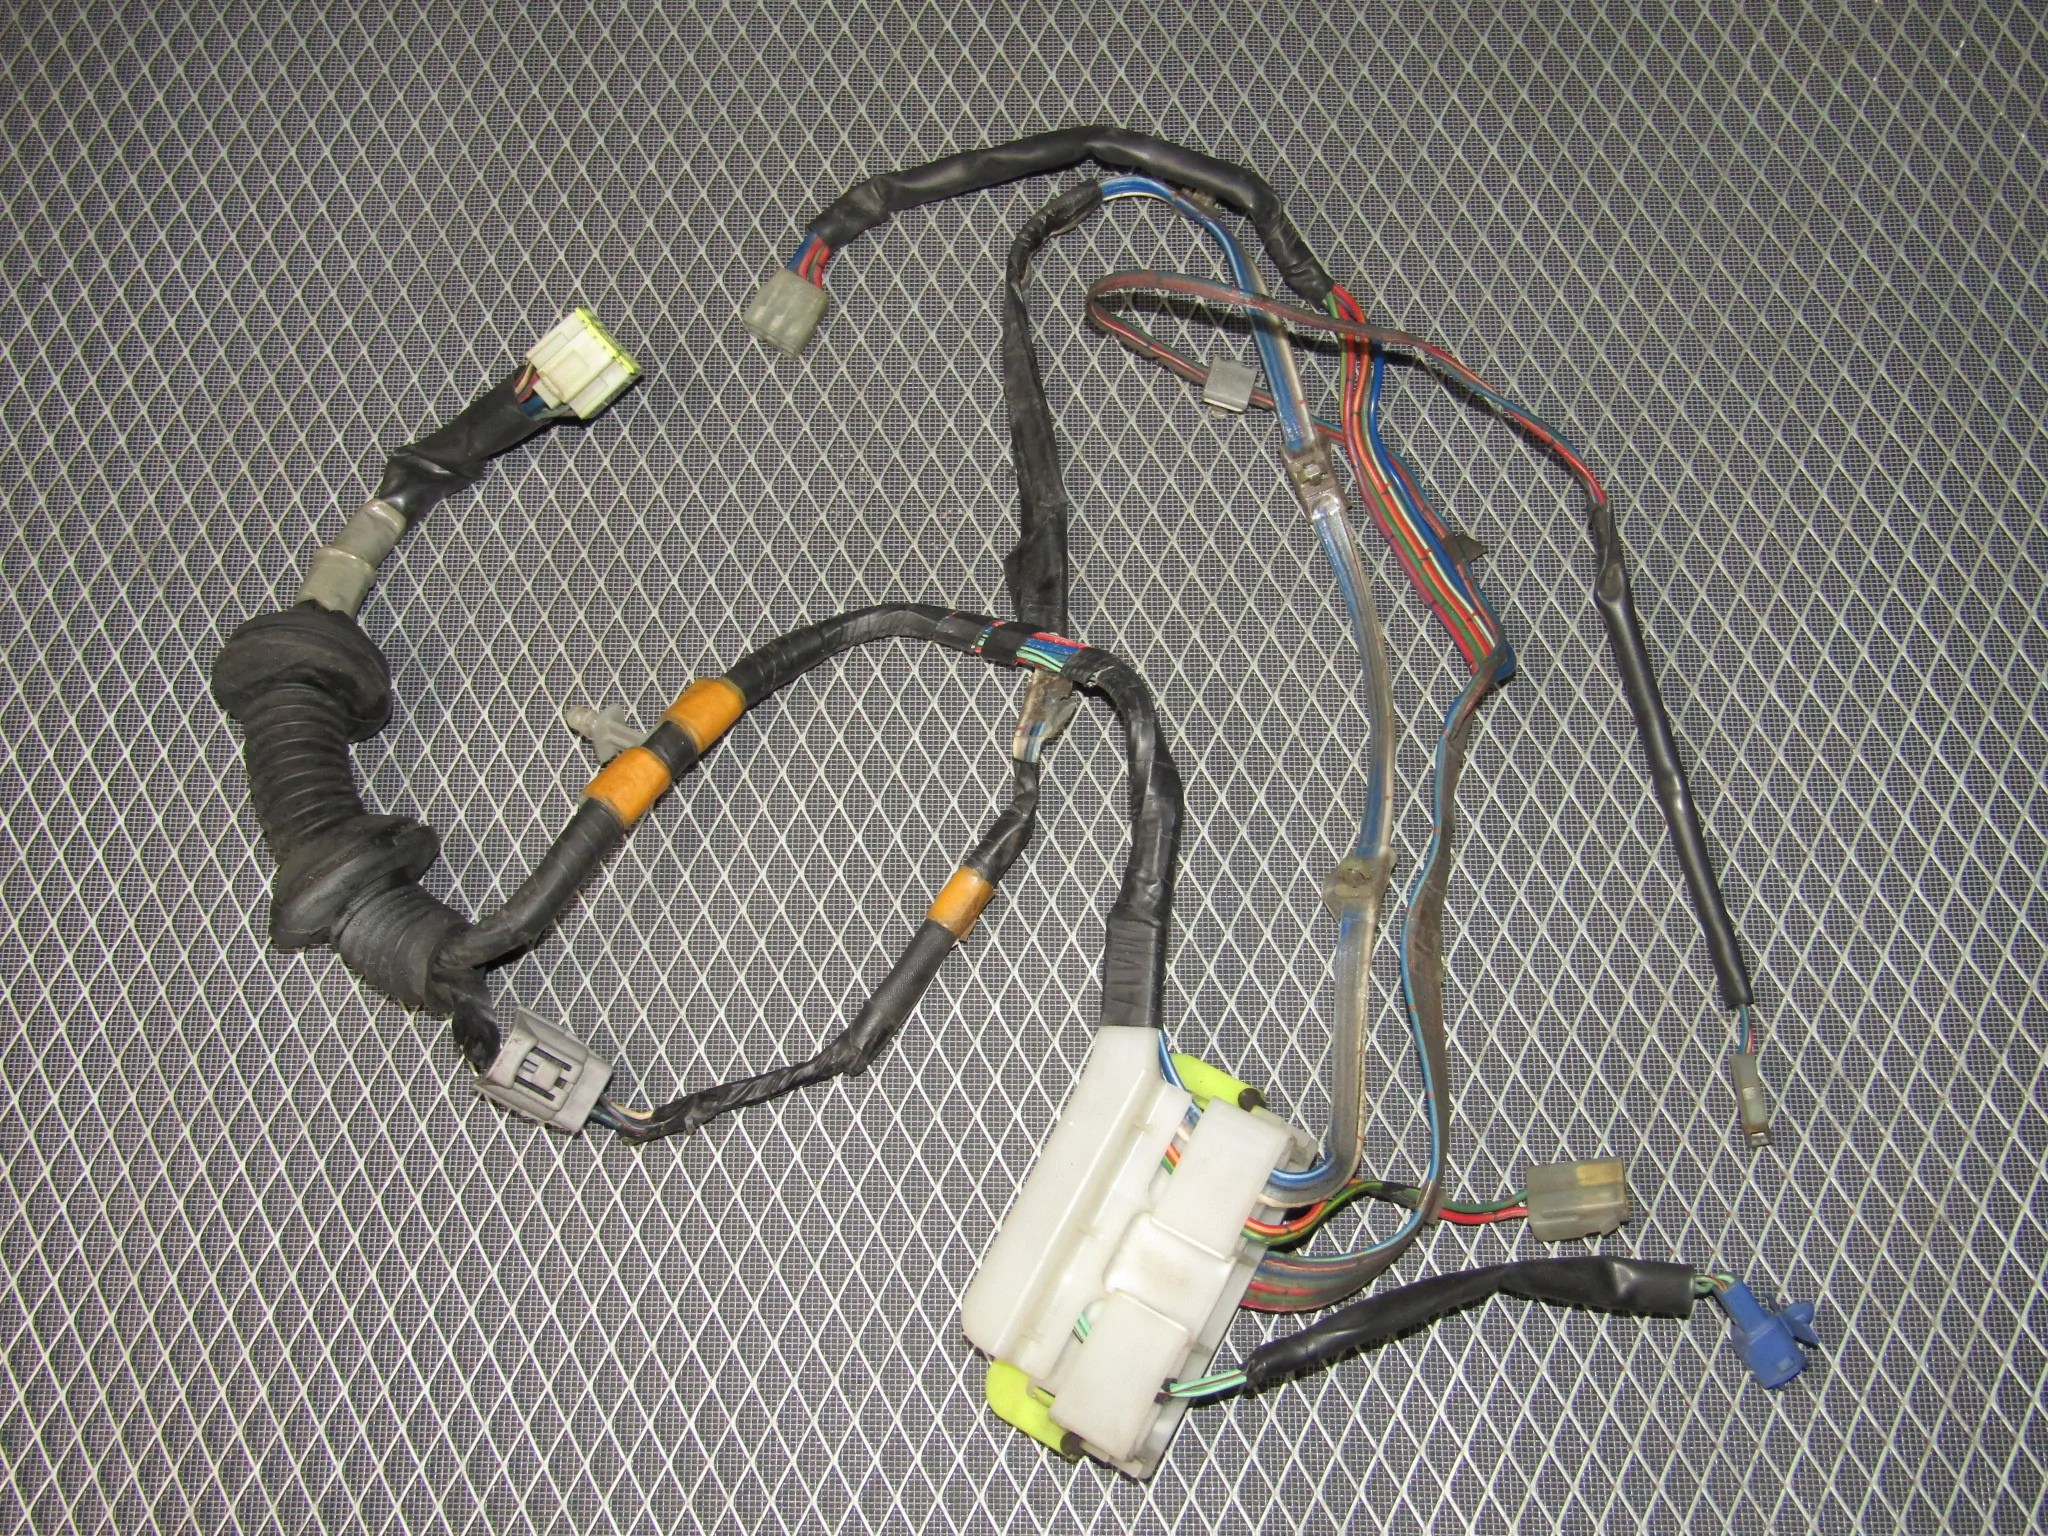 87 91 toyota crown royal saloon oem door wiring harness front right [ 2048 x 1536 Pixel ]